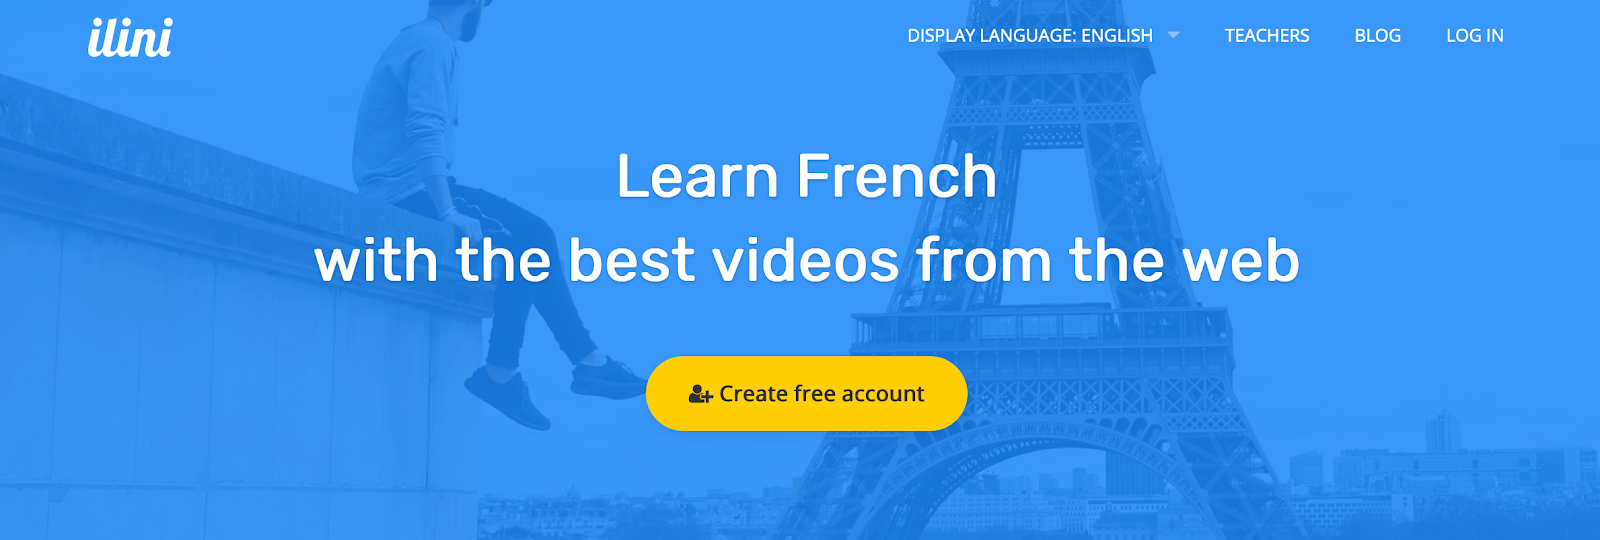 Learn French with the Best Videos from the Web | Ilini